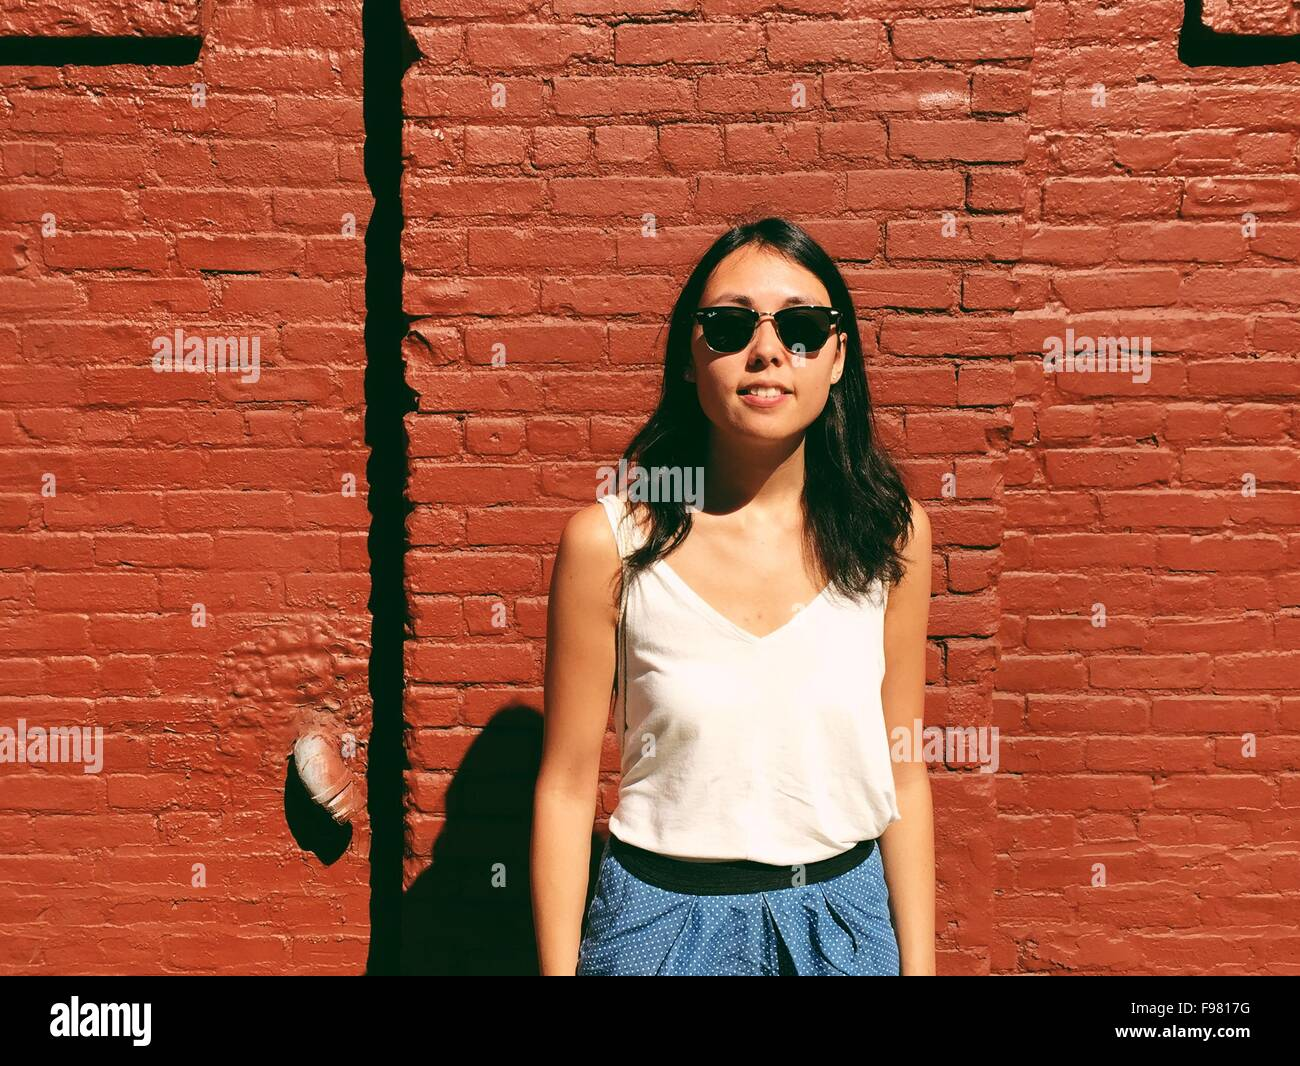 Portrait Of Beautiful Young Woman Standing Against Red Brick Wall Stock Photo